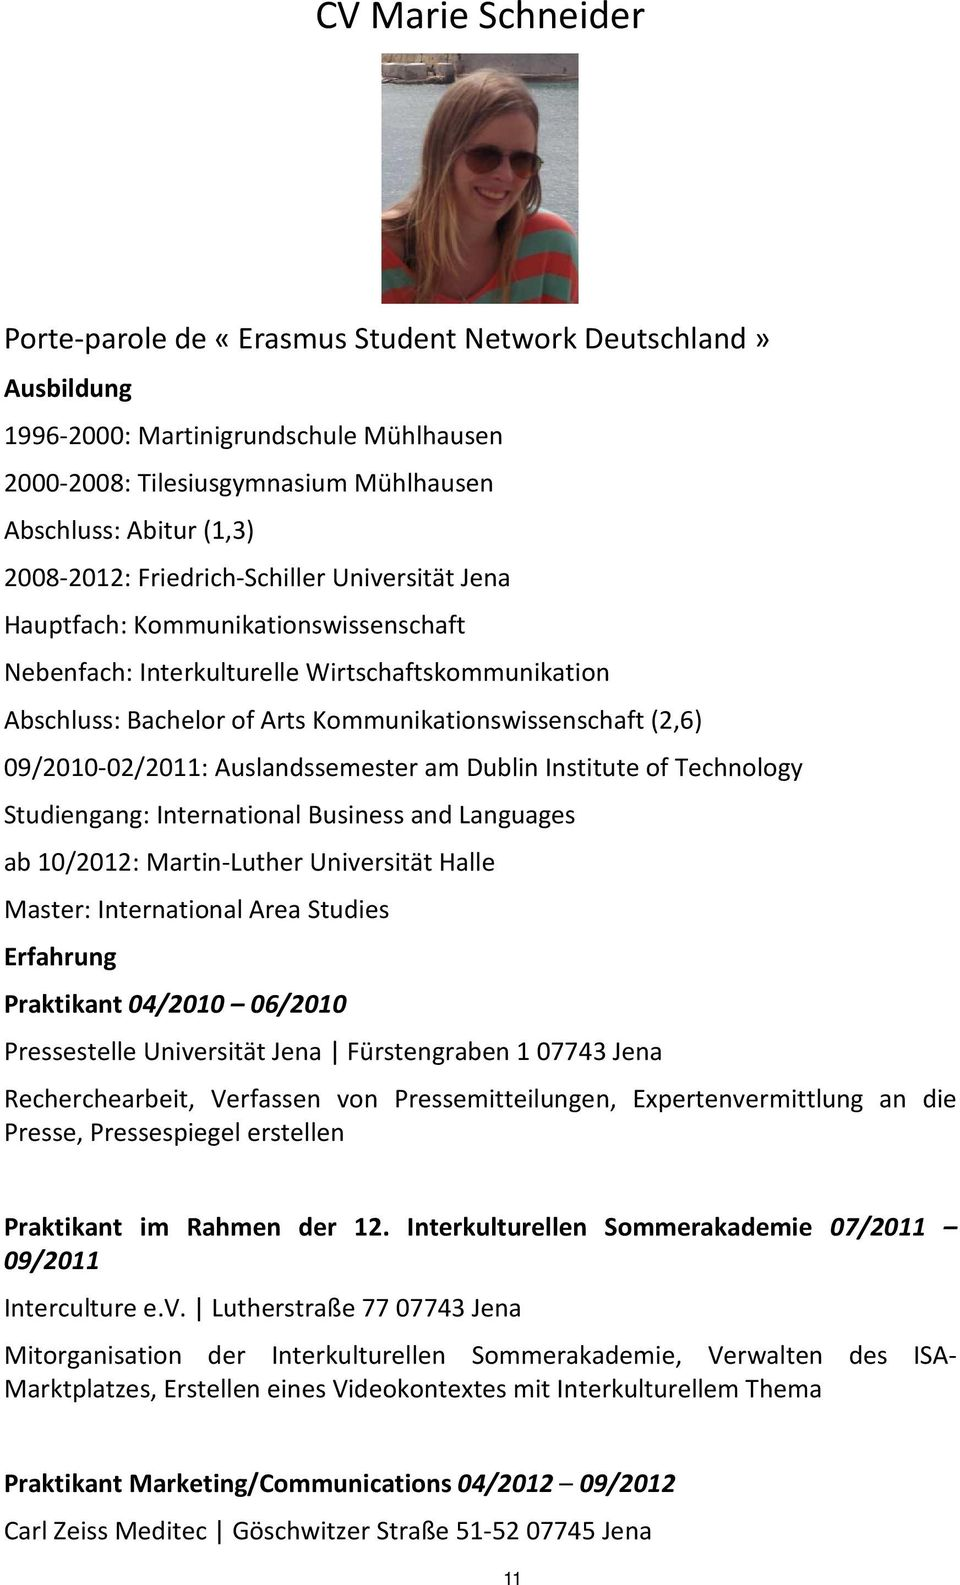 09/2010-02/2011: Auslandssemester am Dublin Institute of Technology Studiengang: International Business and Languages ab 10/2012: Martin-Luther Universität Halle Master: International Area Studies